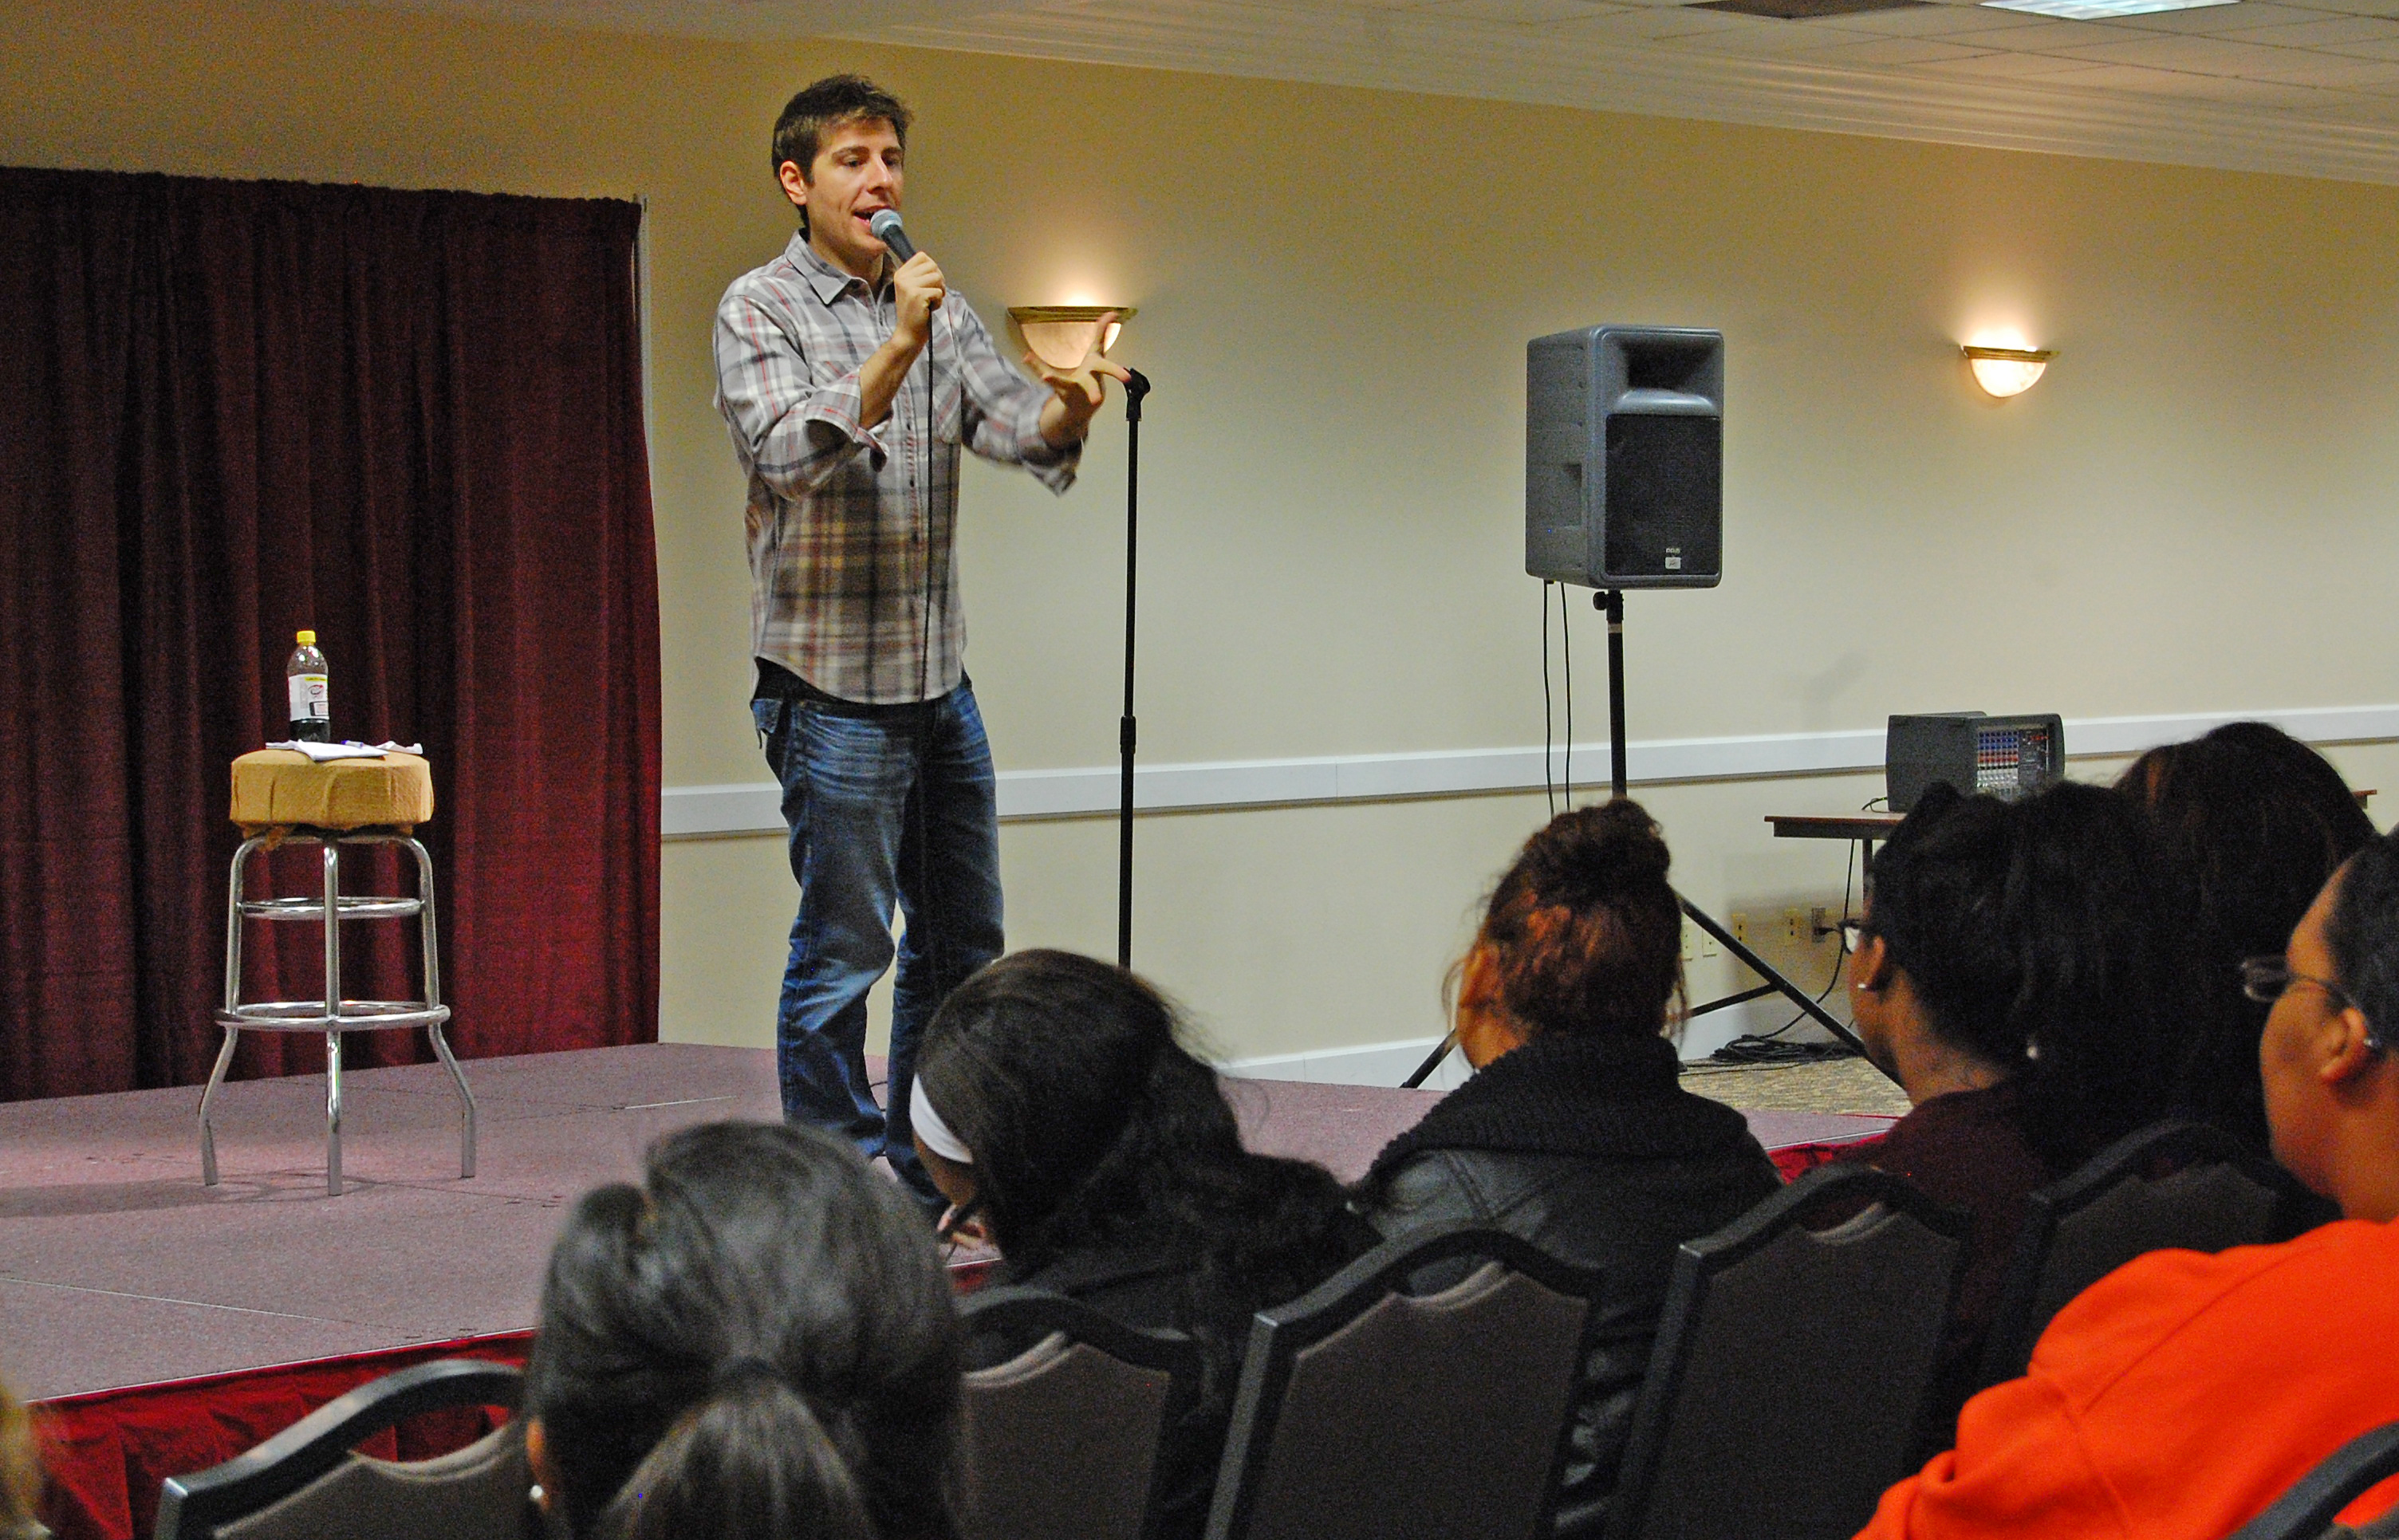 Comedian Ryan Reiss gets the laughs